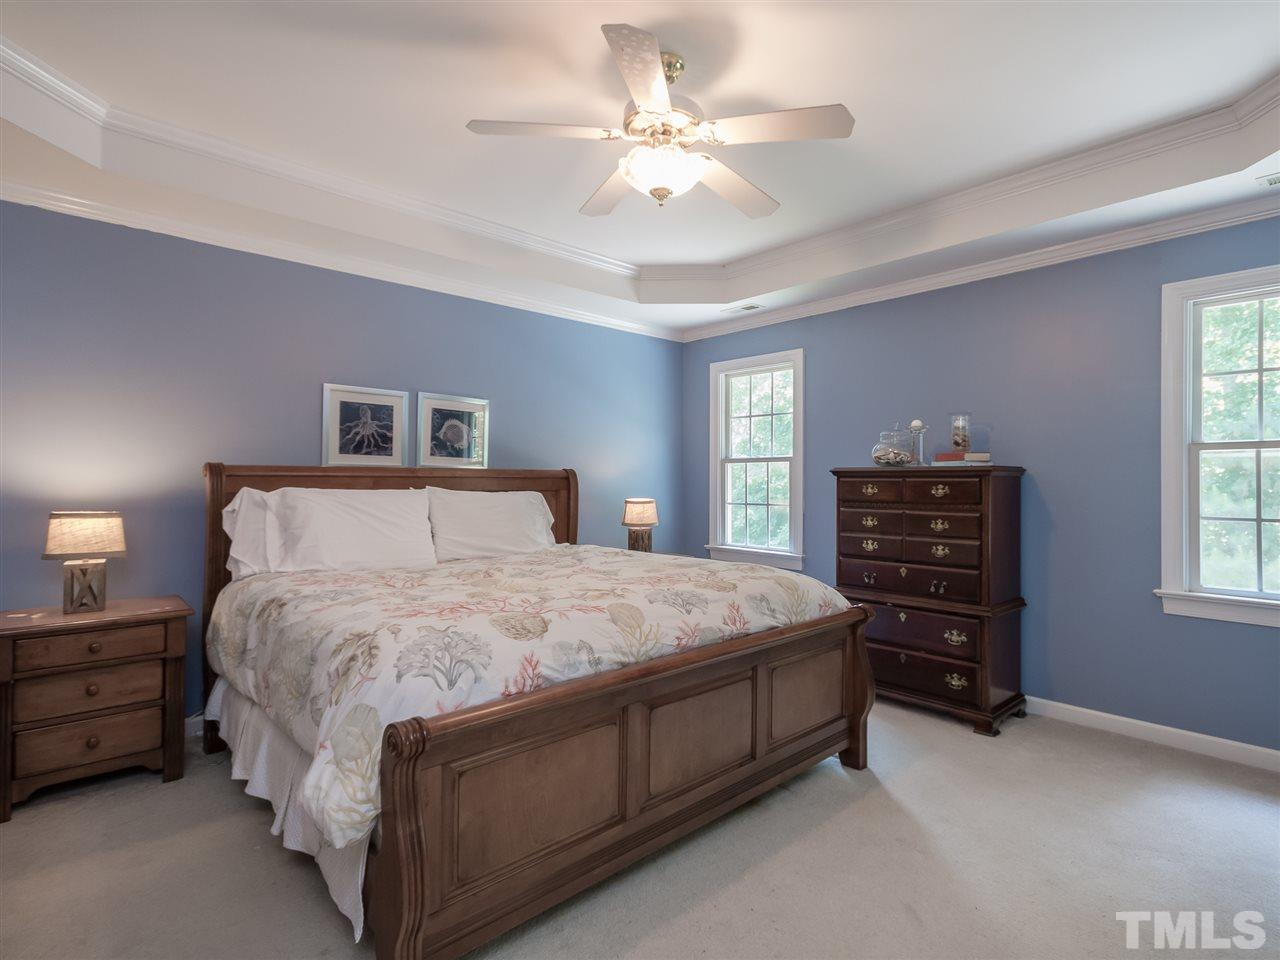 Oversized master bedroom with trey ceiling and lots of natural lighting. Master includes a walk-in closet and remodeled master bath.